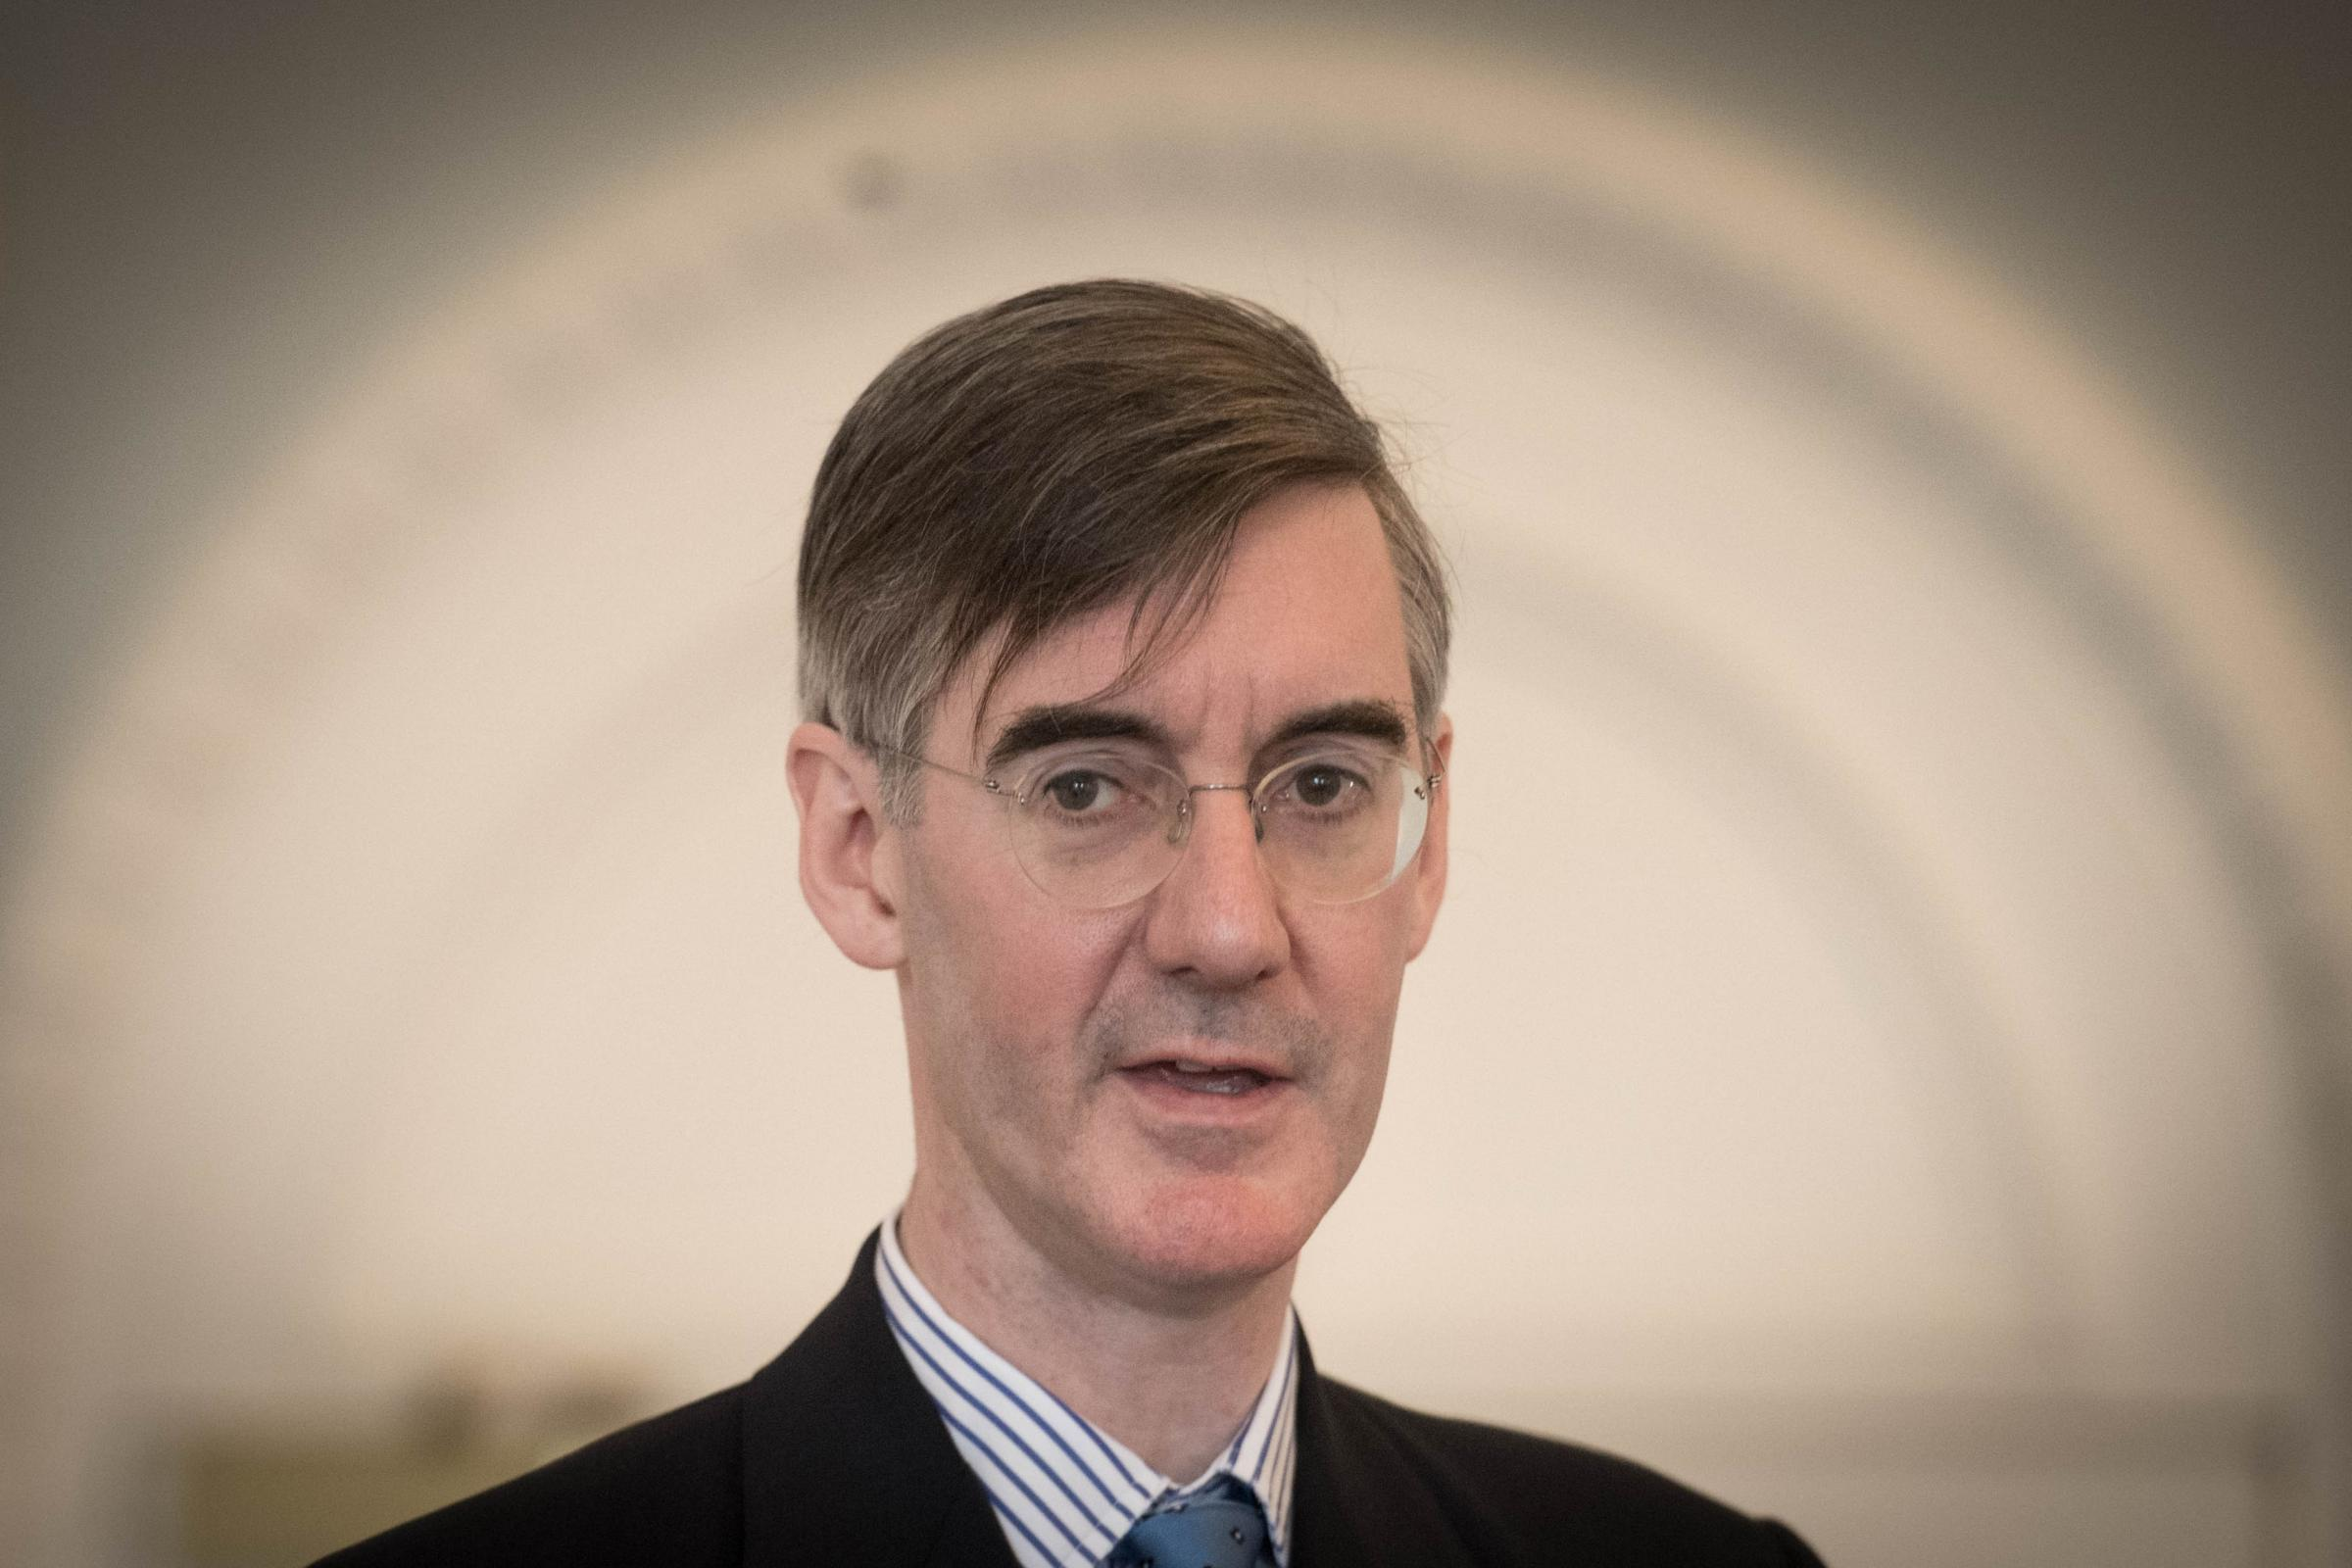 Rees-Mogg: getting Chequers Plan through on back of Labour votes 'most divisive thing' May could do